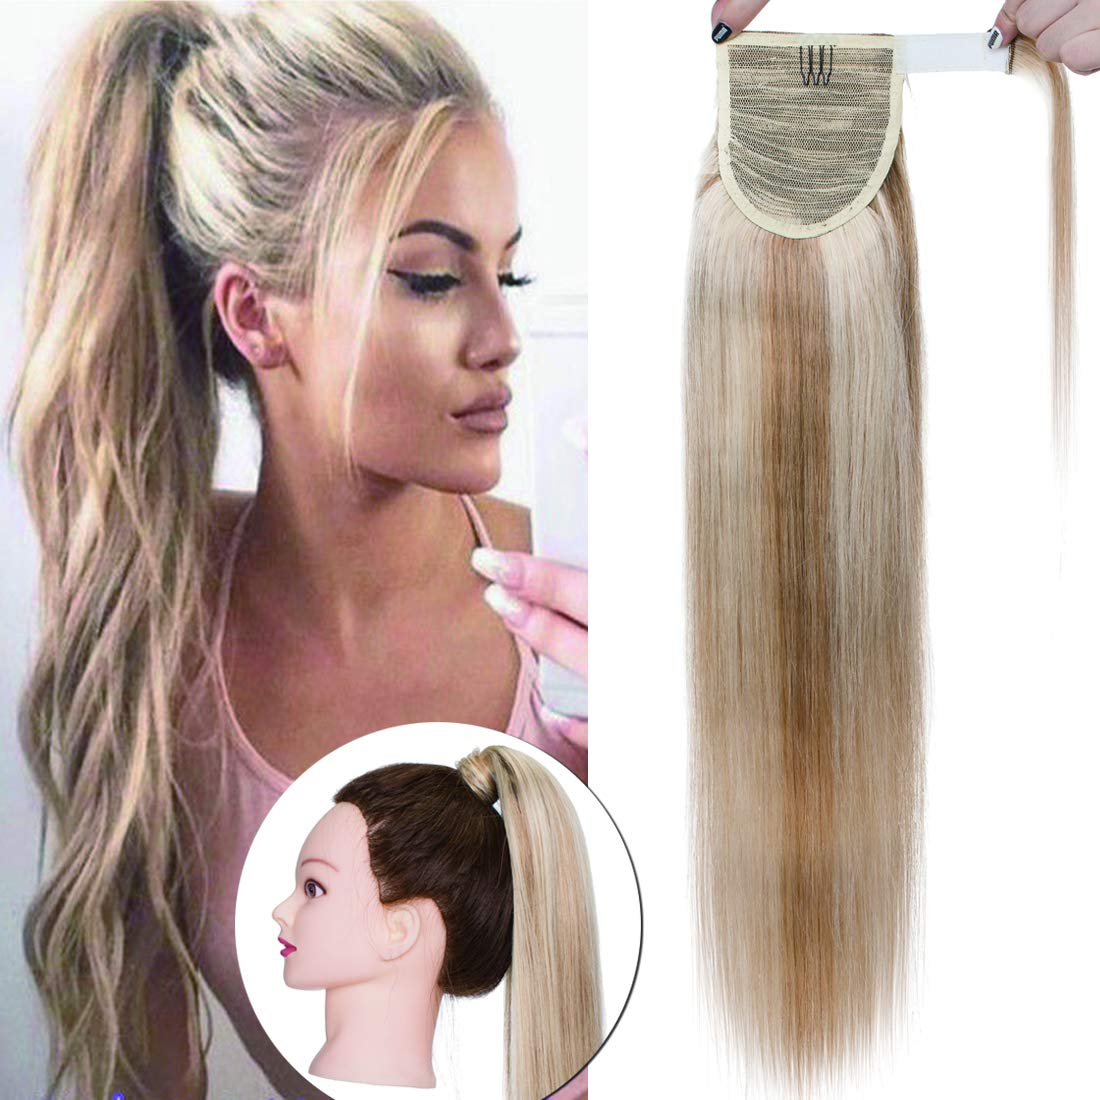 SEGO Wrap Around Ponytail Hair Extensions Human Hair Long Straight 100% Real Remy Hair Pony Tails Hair Extensions For Women #18P613 Ash Blonde&Bleach Blonde 22 Inch 95g